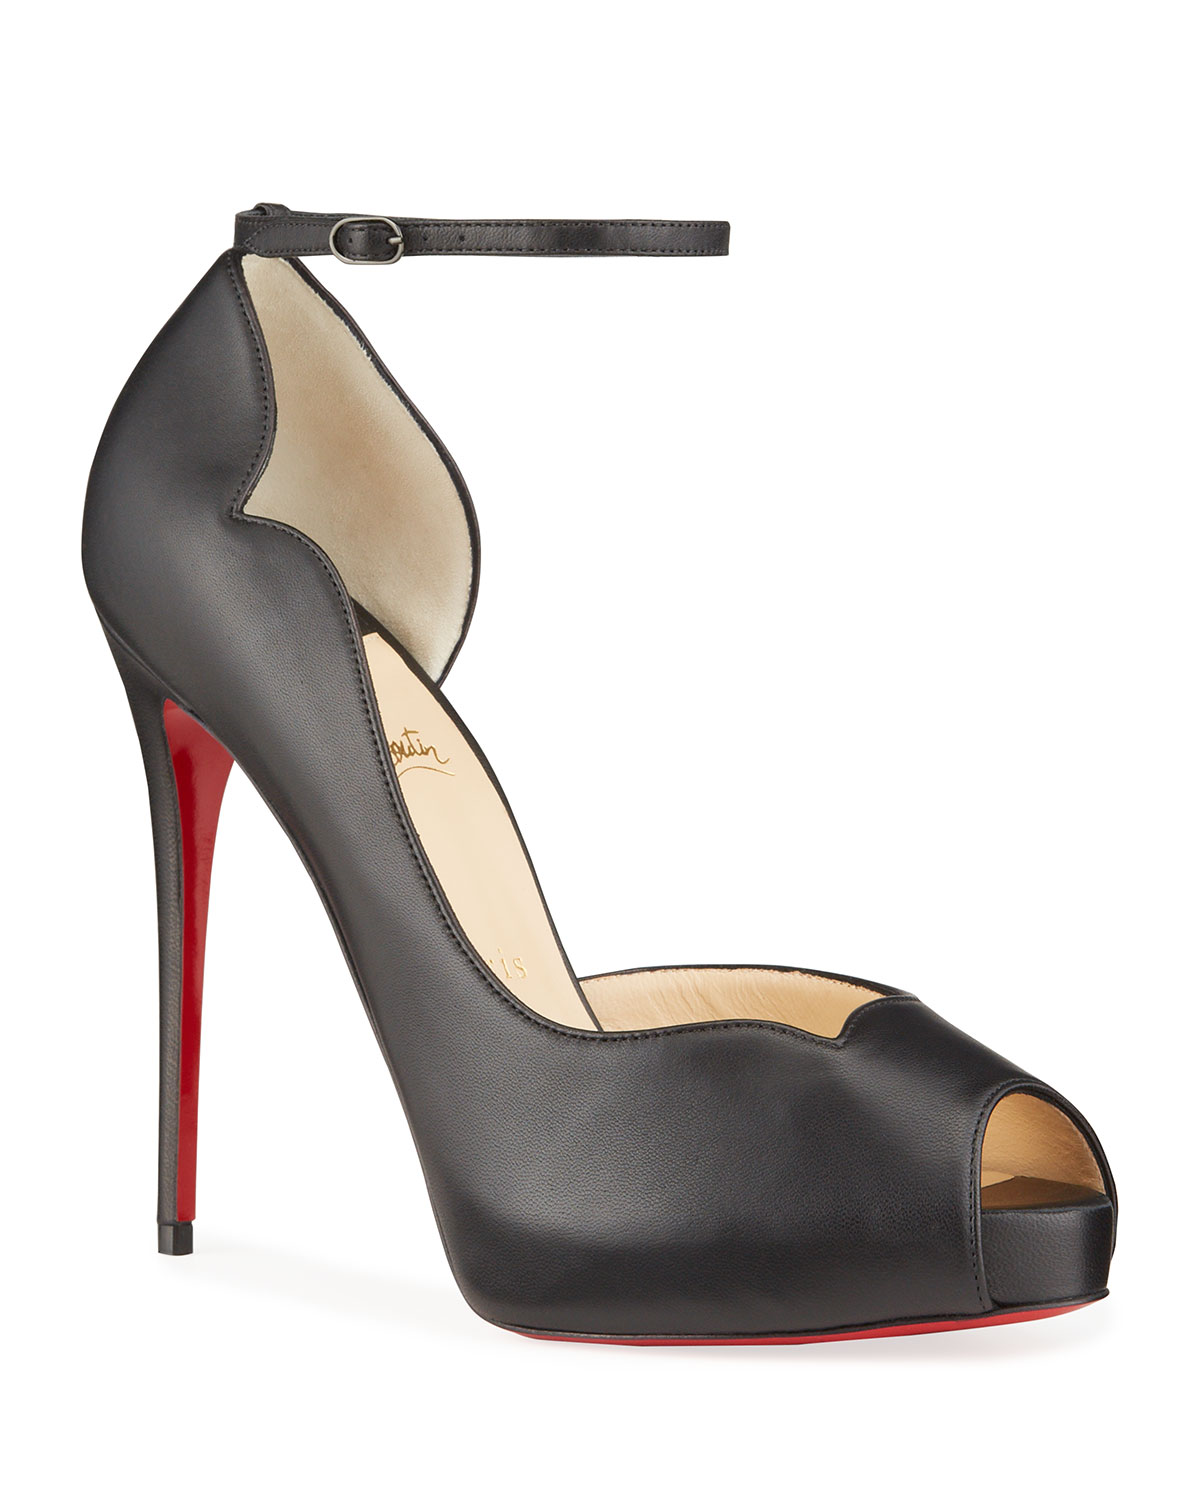 Christian Louboutin ROUND CHICK ALTA RED SOLE PUMPS